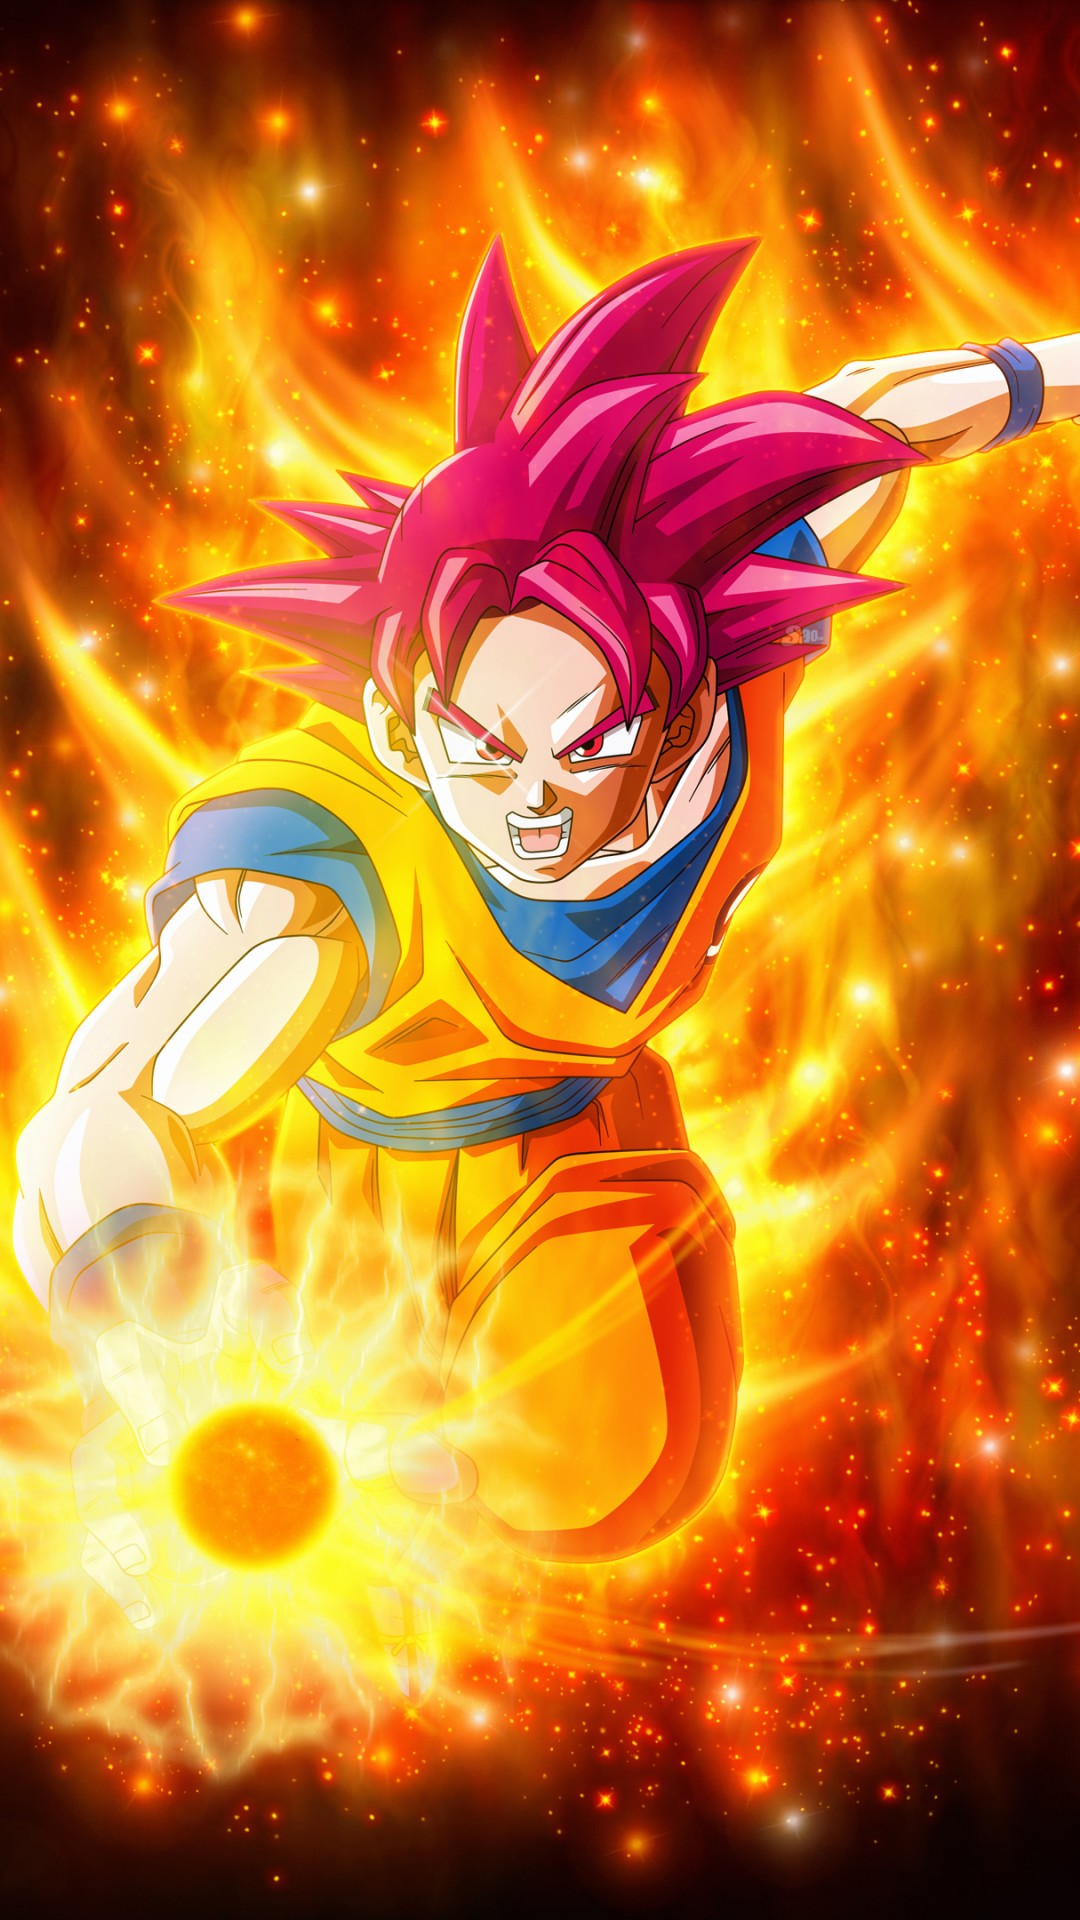 Super saiyan goku dragon ball super super 4k iphone 6 6s - Dragon ball super background music mp3 download ...